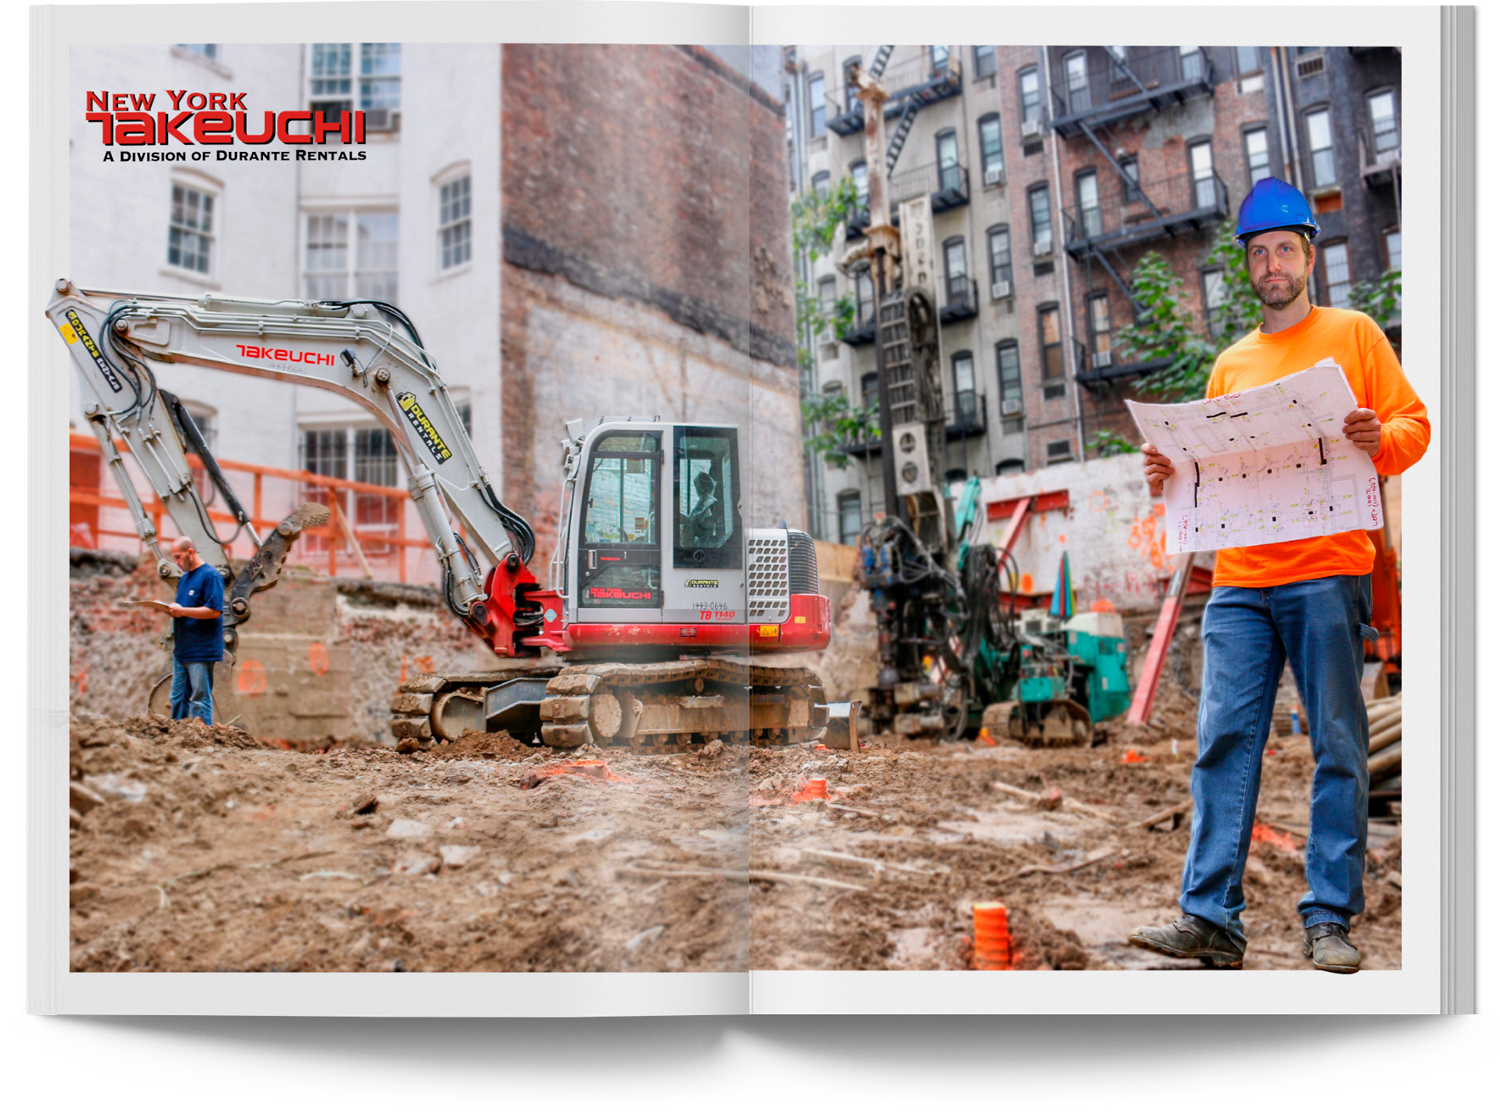 Man and Takeuchi Excavator on Construction Site in Manhattan NYC Catalog Spread with Blue Prints